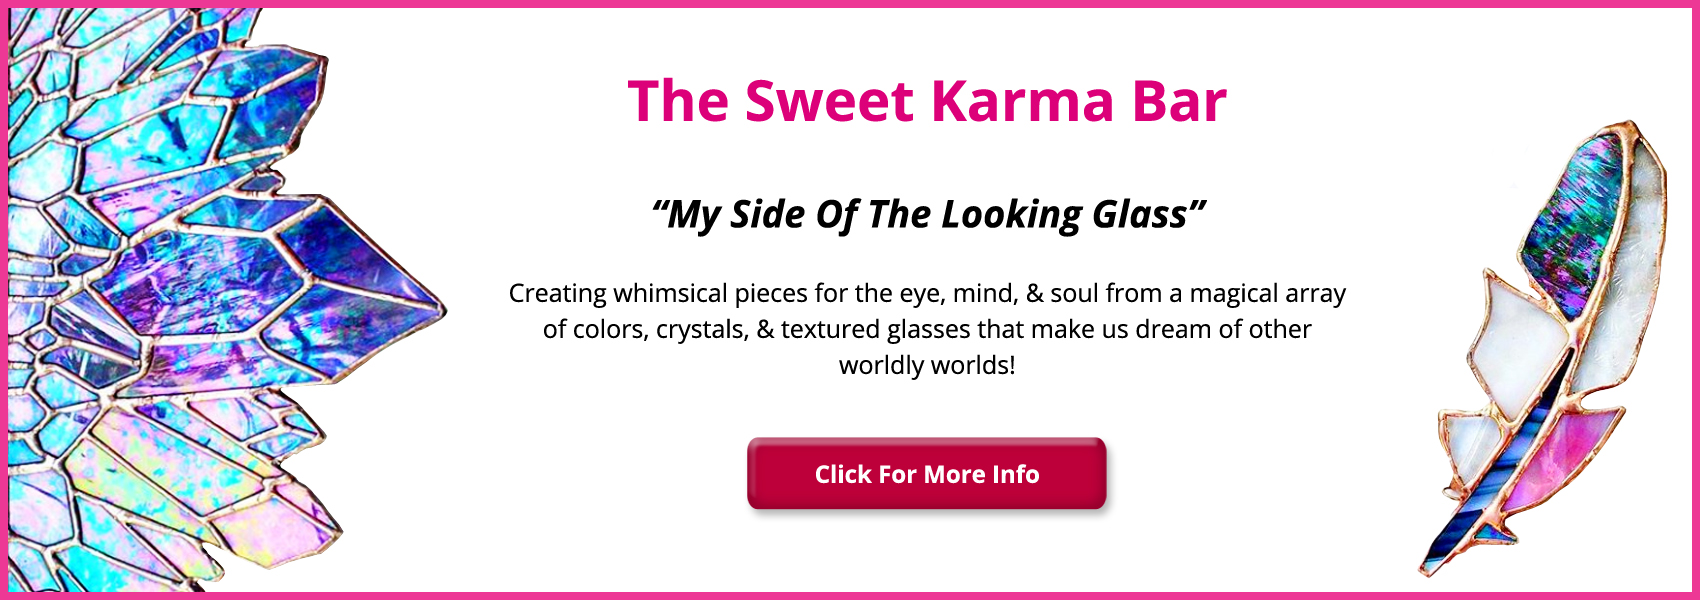 The Sweet Karma Bar (Banner)